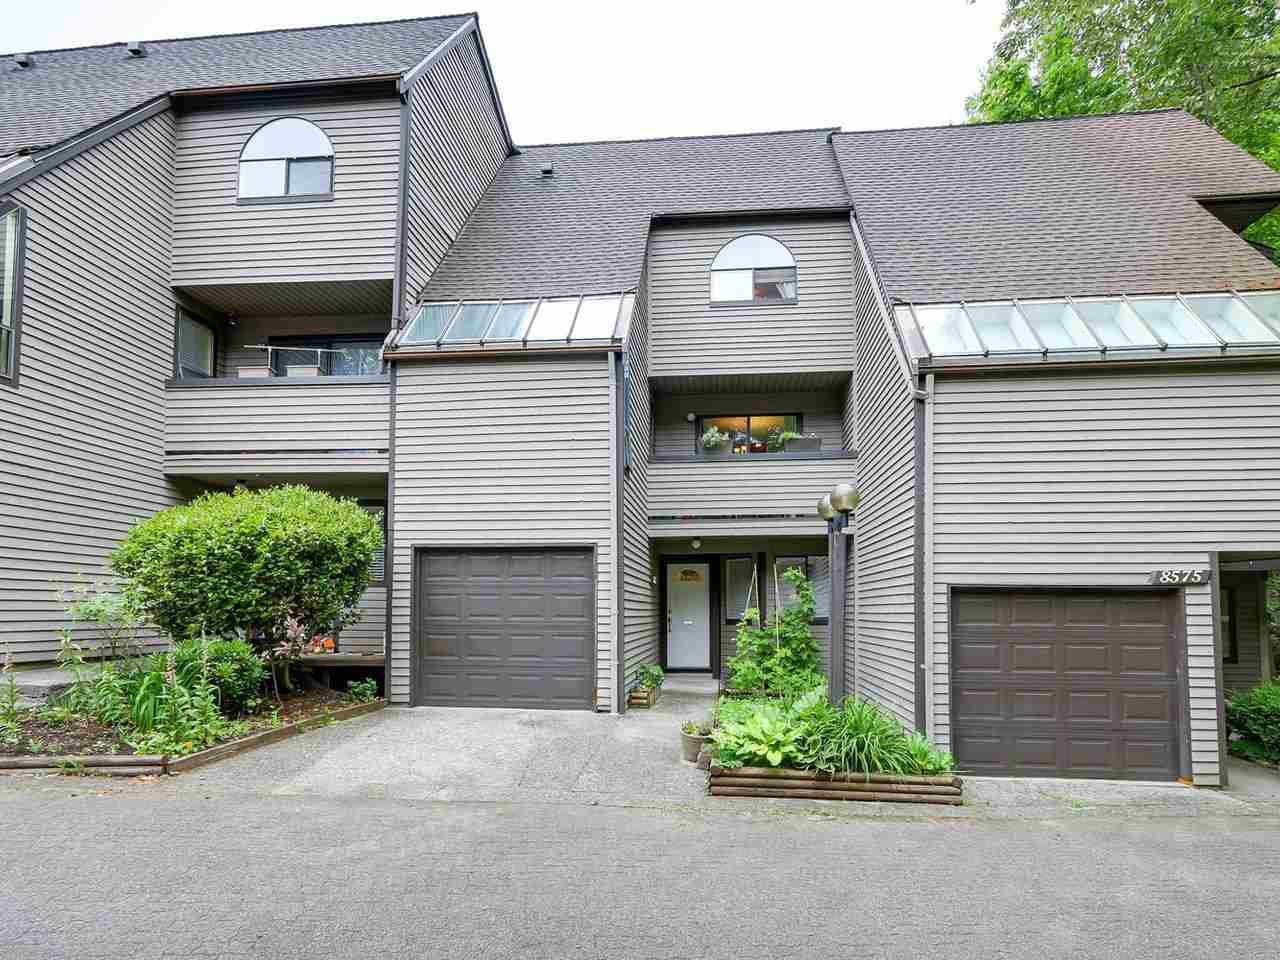 "Main Photo: 8573 WILDERNESS Court in Burnaby: Forest Hills BN Townhouse for sale in ""SIMON FRASER VILLAGE"" (Burnaby North)  : MLS®# R2171359"